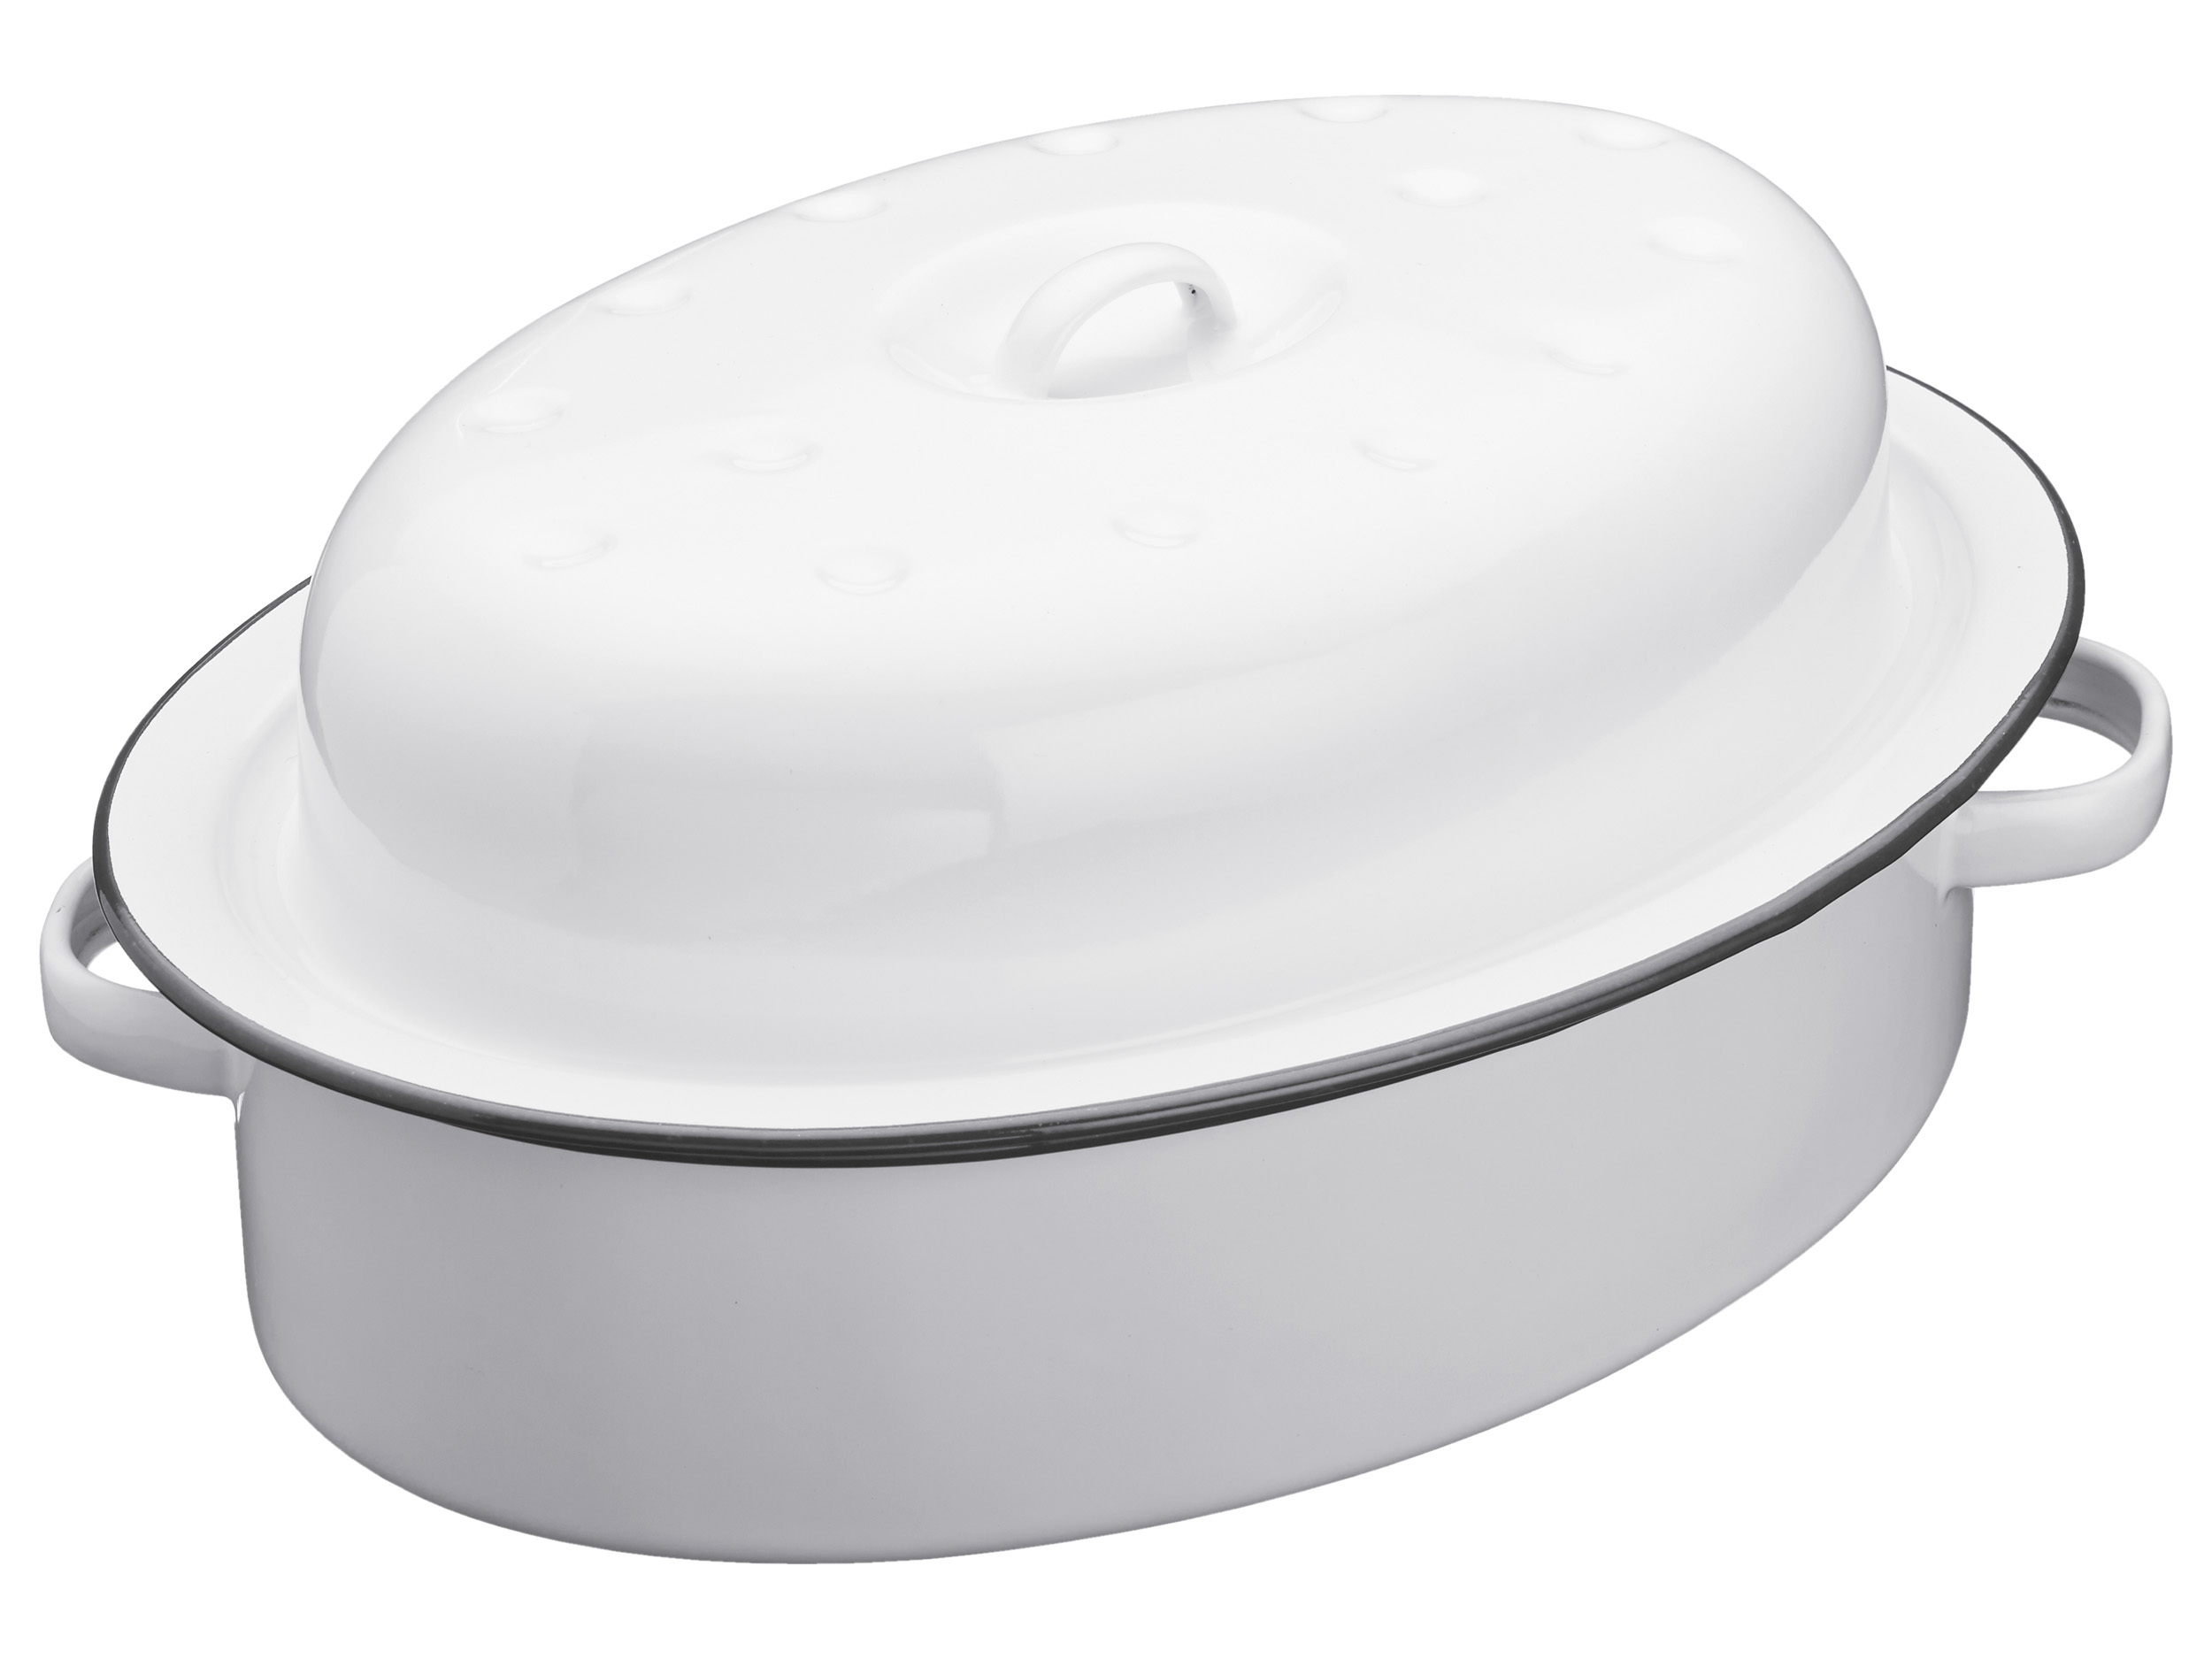 Kitchen Craft Emaljgryta Oval med lock - Vit/grå 30cm